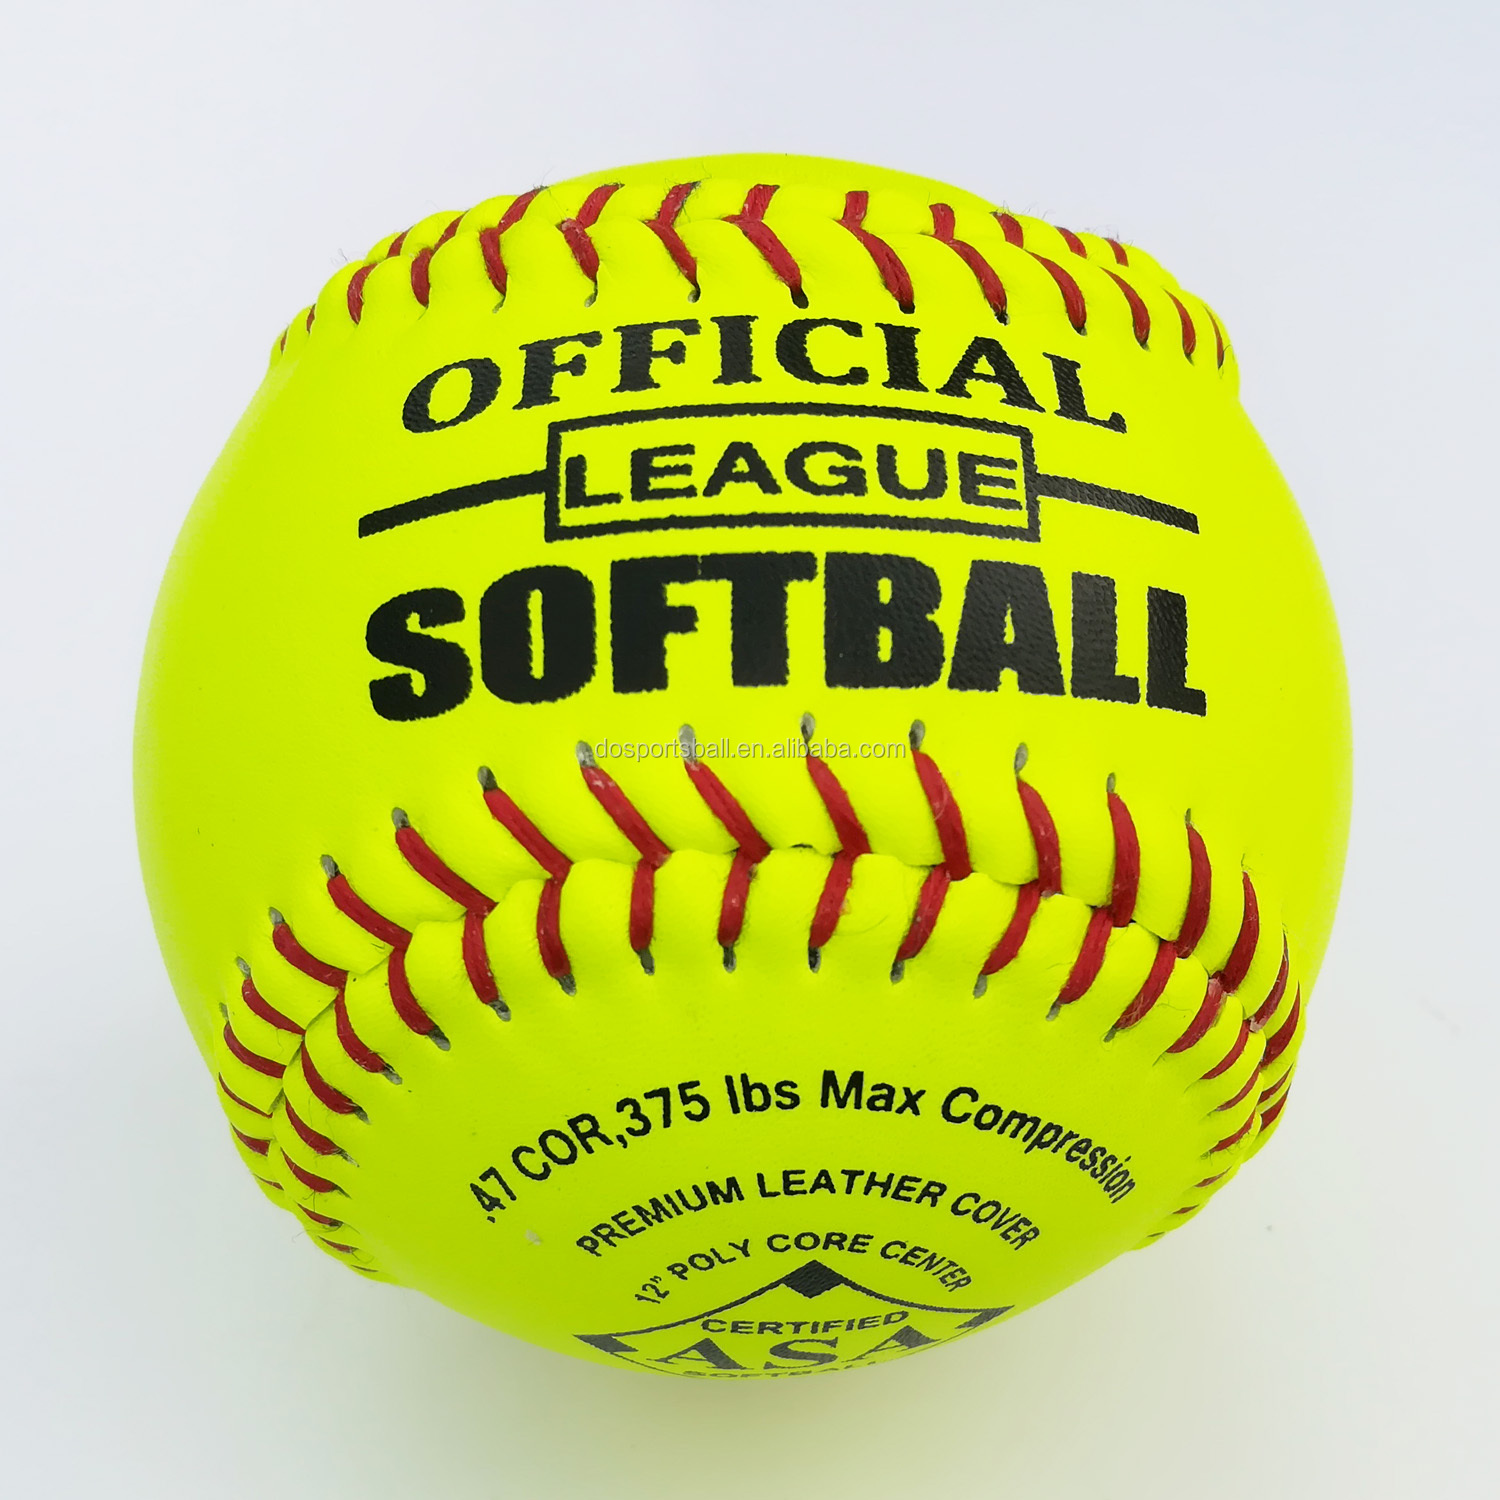 COR.52, 300 LBS compression slow pitching optic yellow leather+ polycore 12'' softball balls custom logo game quality softball